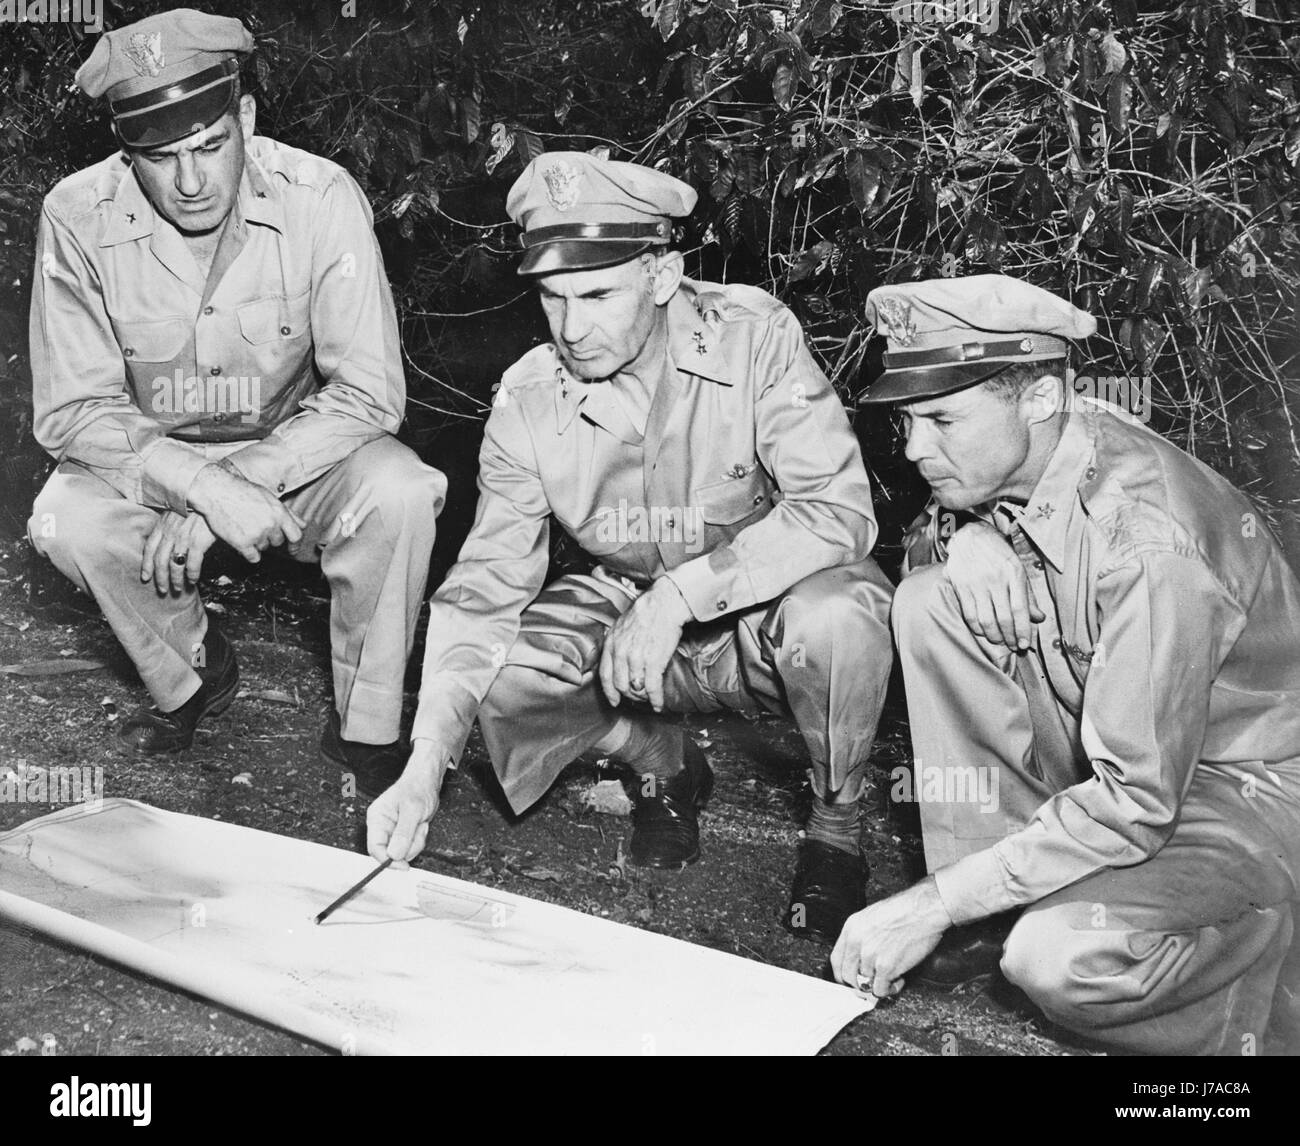 U.S. Army members reviewing a map in the South Pacific area, circa 1942. - Stock Image